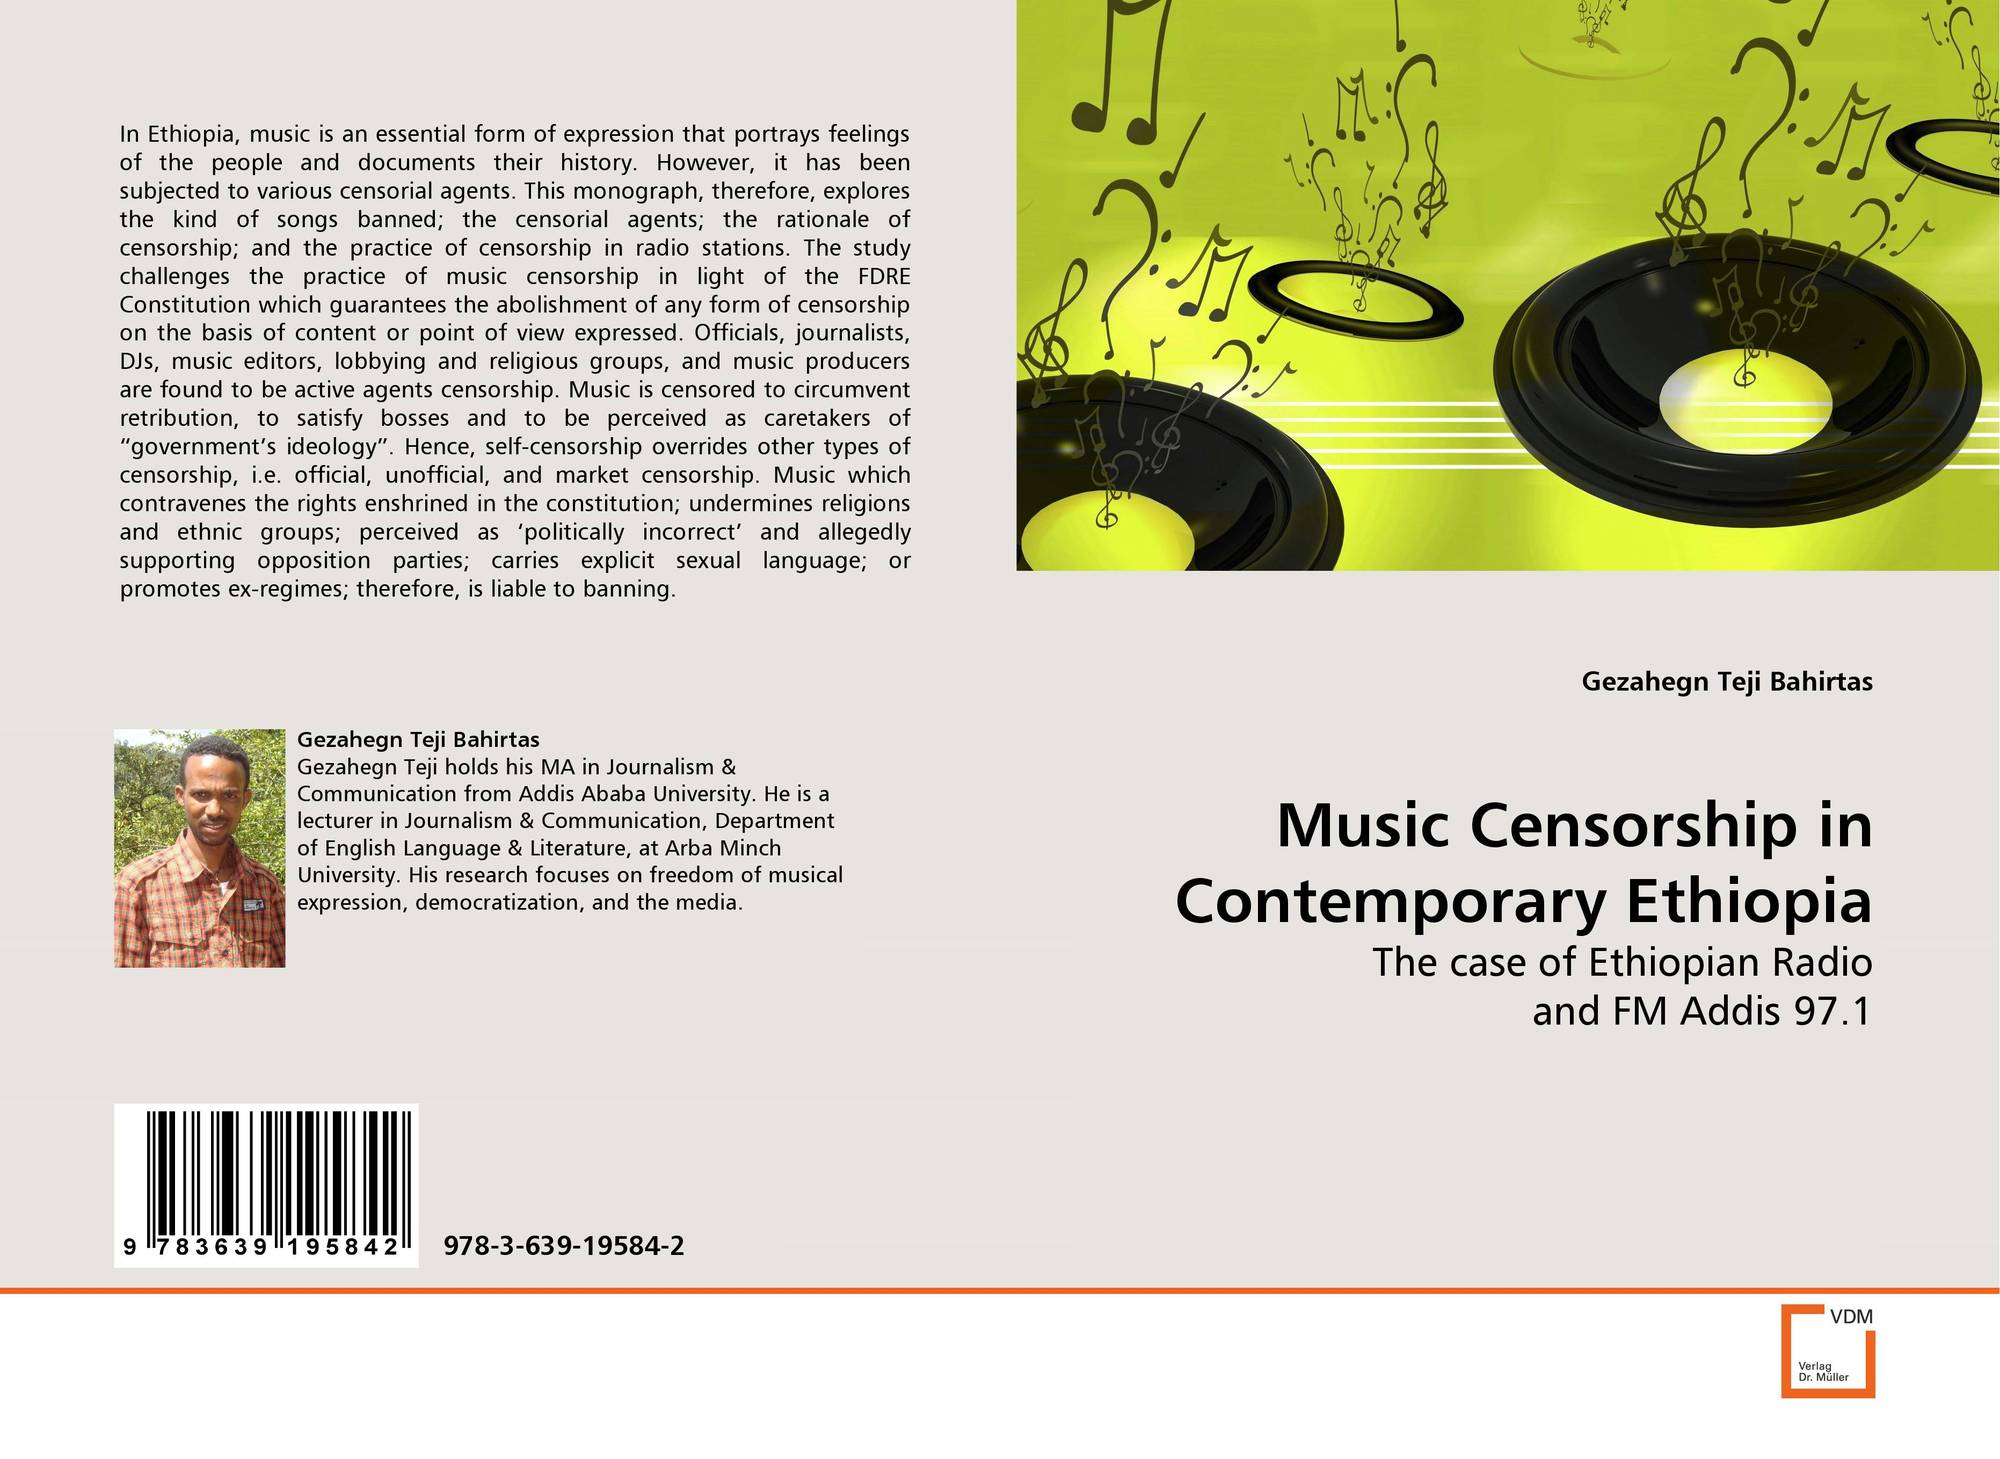 the practice of music censorship Music psychology: censorship censorship of music isthe practice that involves restriction of free access to musical works by various artists (cloonan, 2004, p3) censorship arises from different motivating factors, which include religious, military, political, or moral reasons.